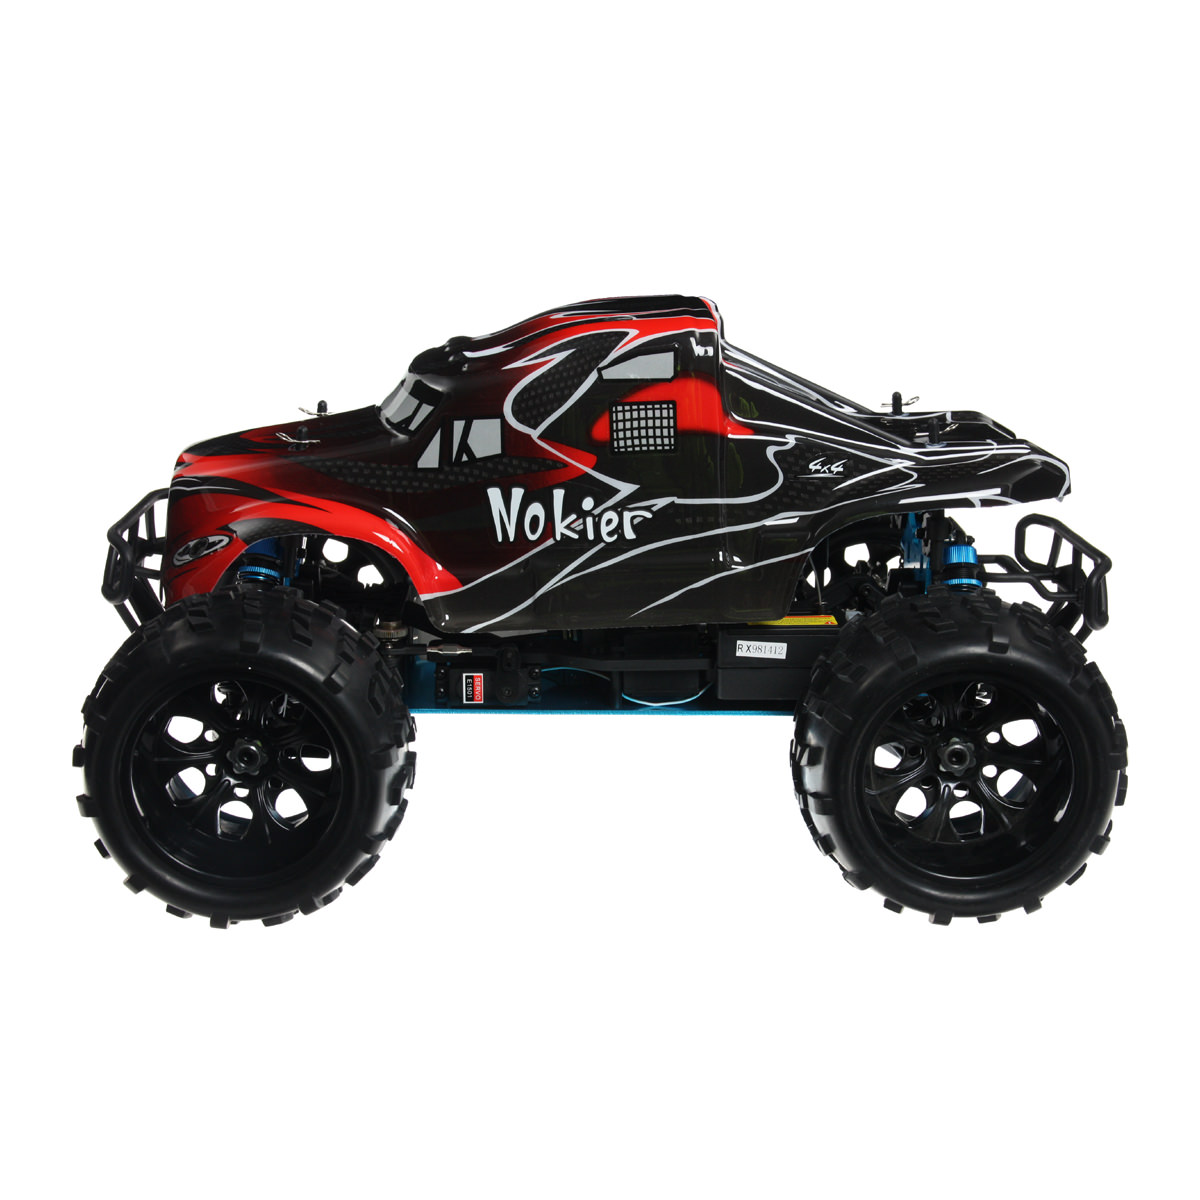 Hsp Rc Truck Nitro Gas Power Off Road Monster Truck 94188: HSP 94862-08327 Black RC Monster Truck At Hobby Warehouse